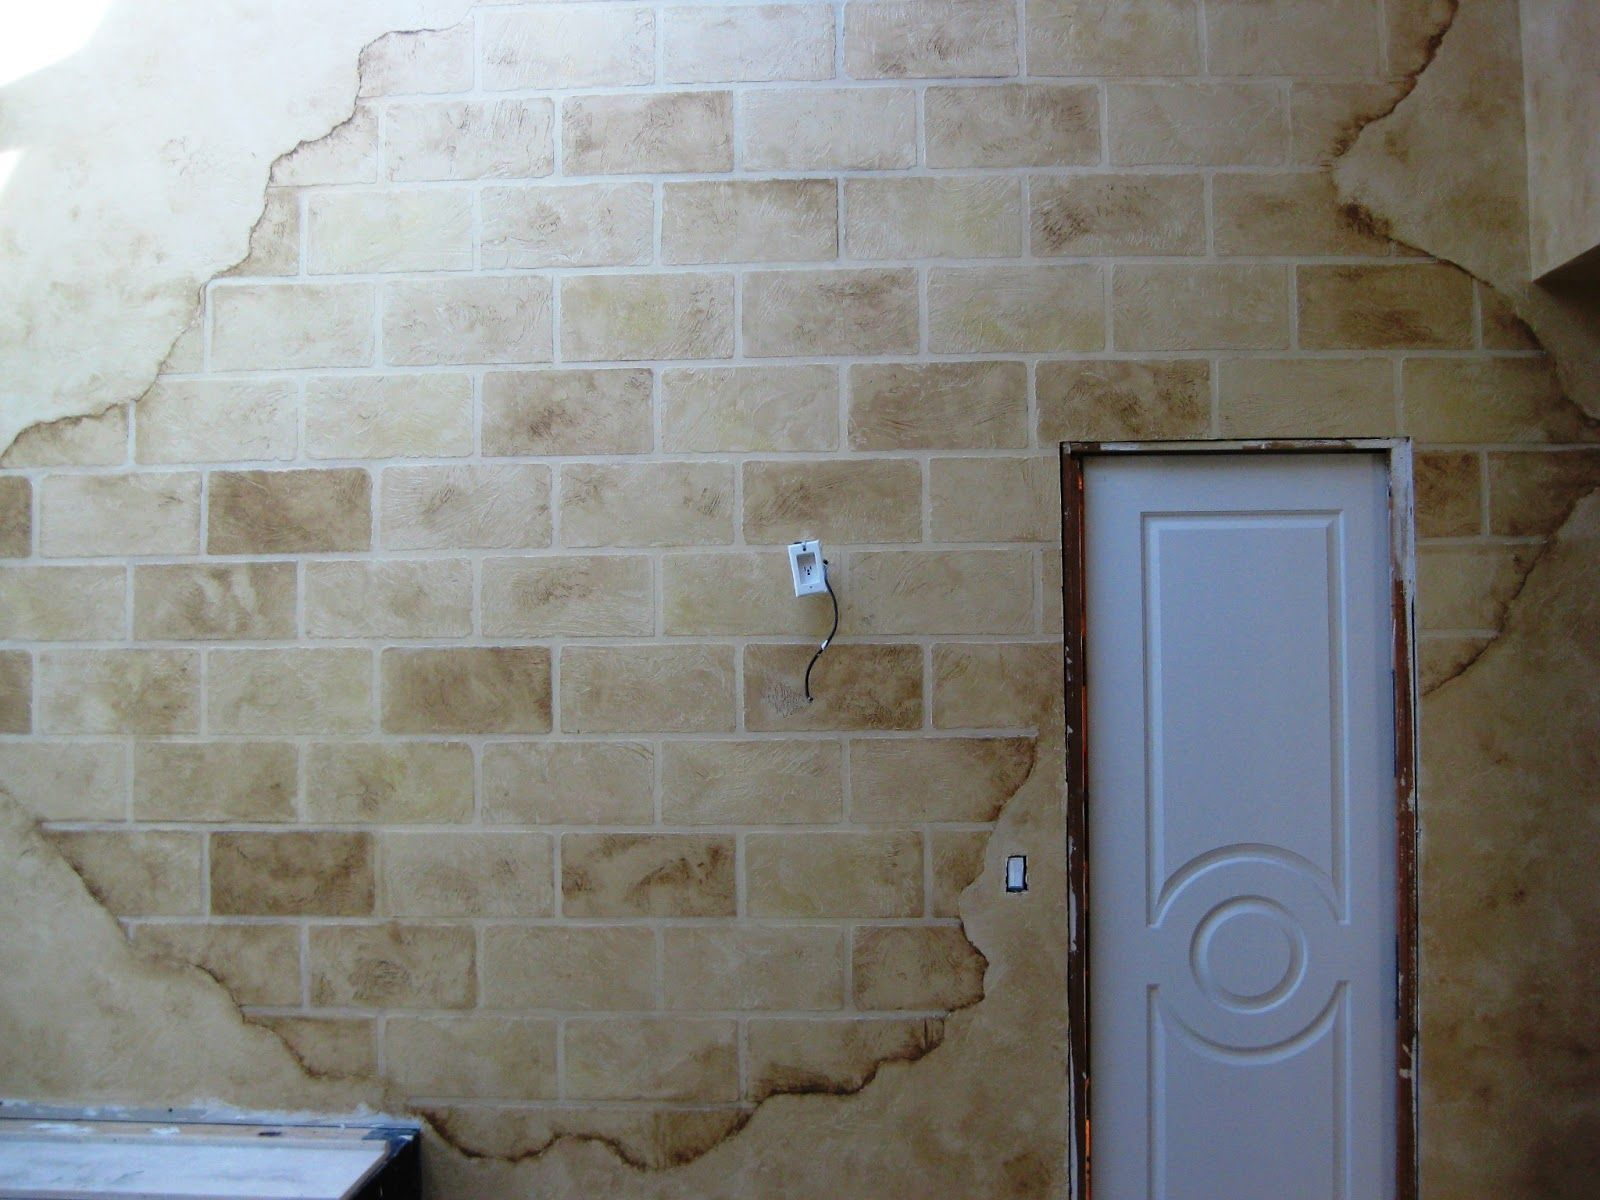 Images For Concrete Block Interior Wall Cinder Block Walls Decorating Cinder Block Walls Block Wall